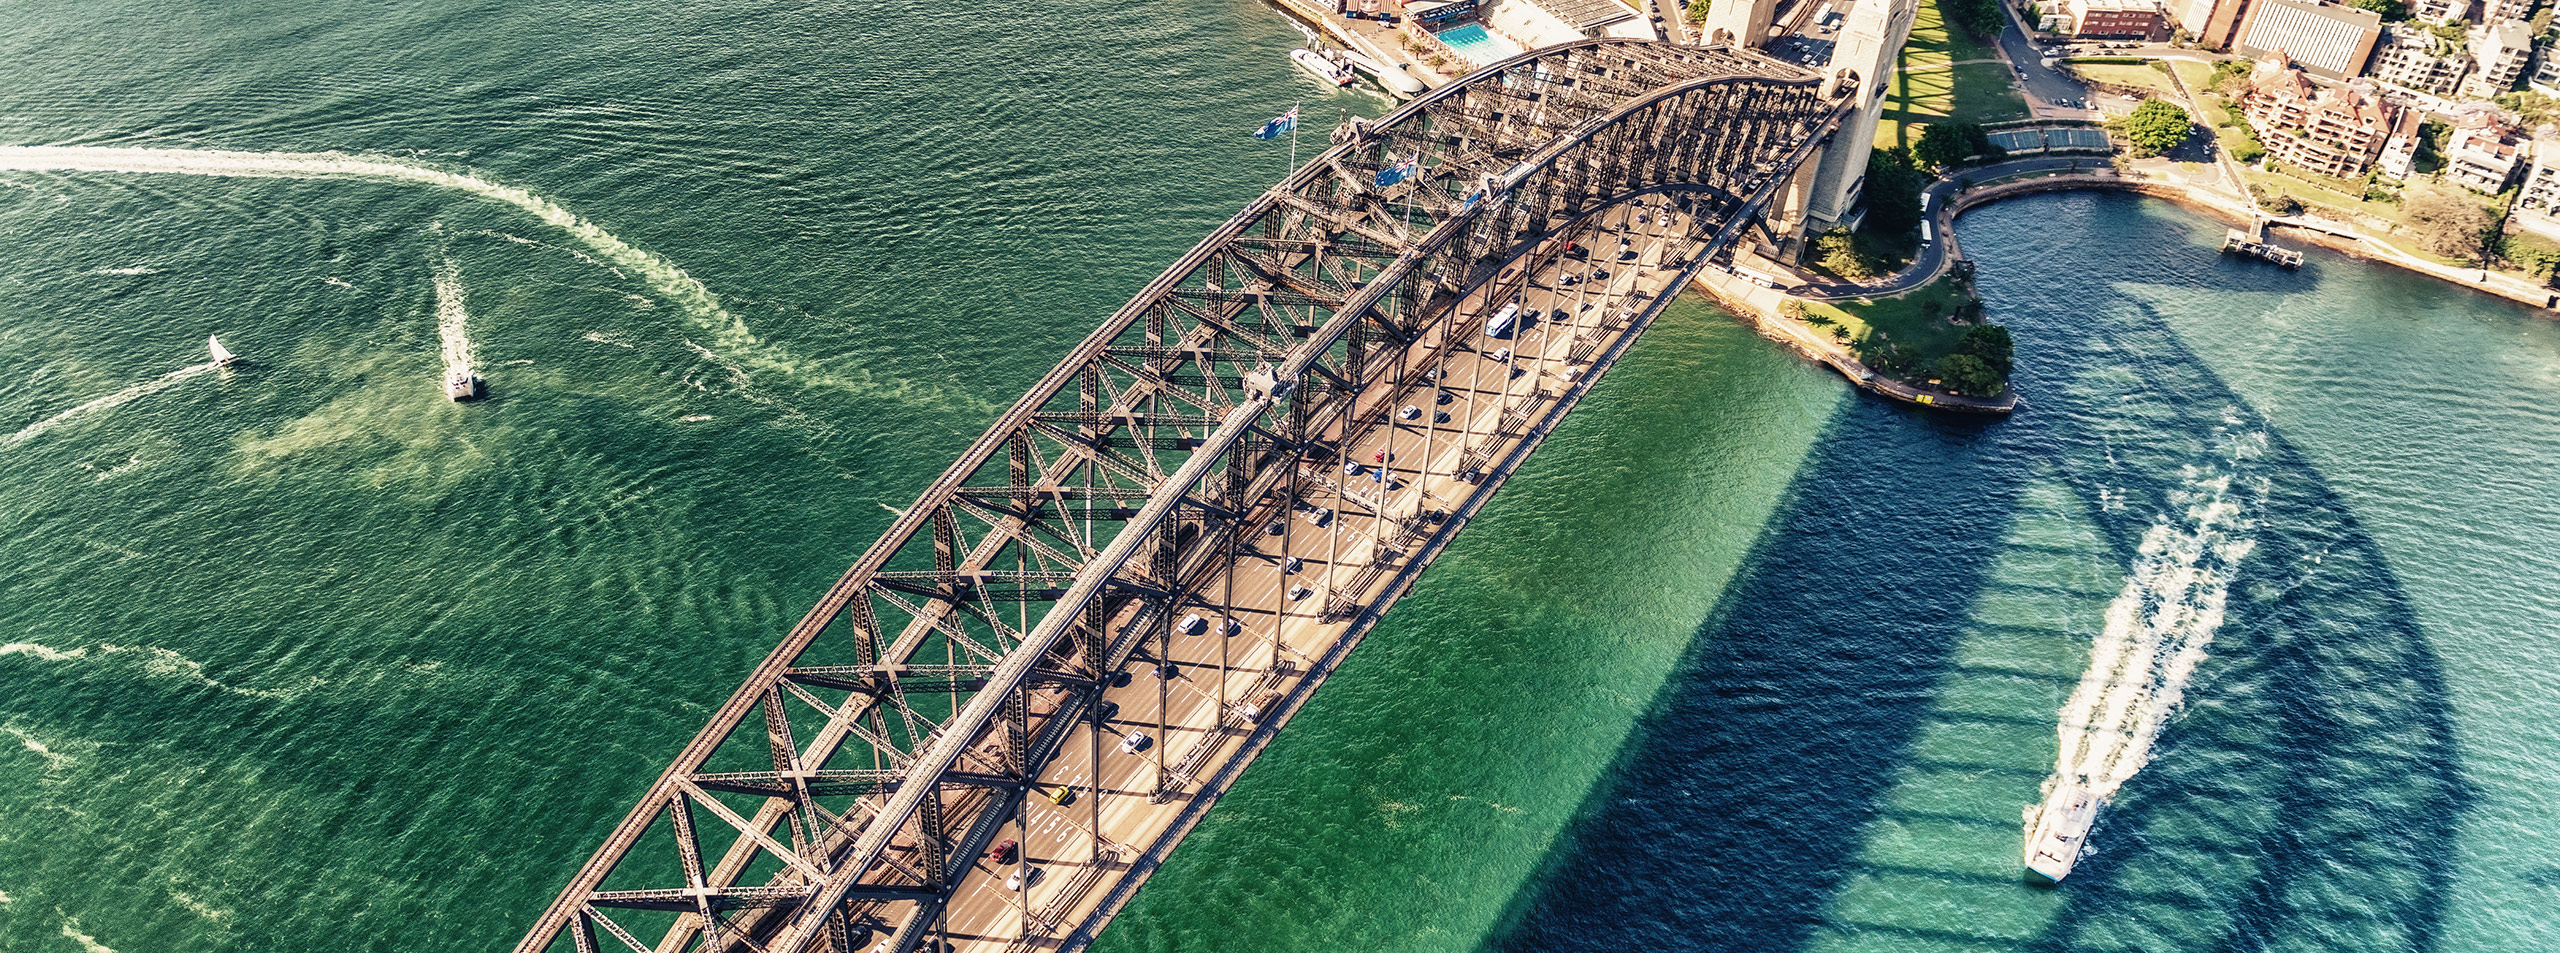 Sydney Harbour Bridge, aerial view